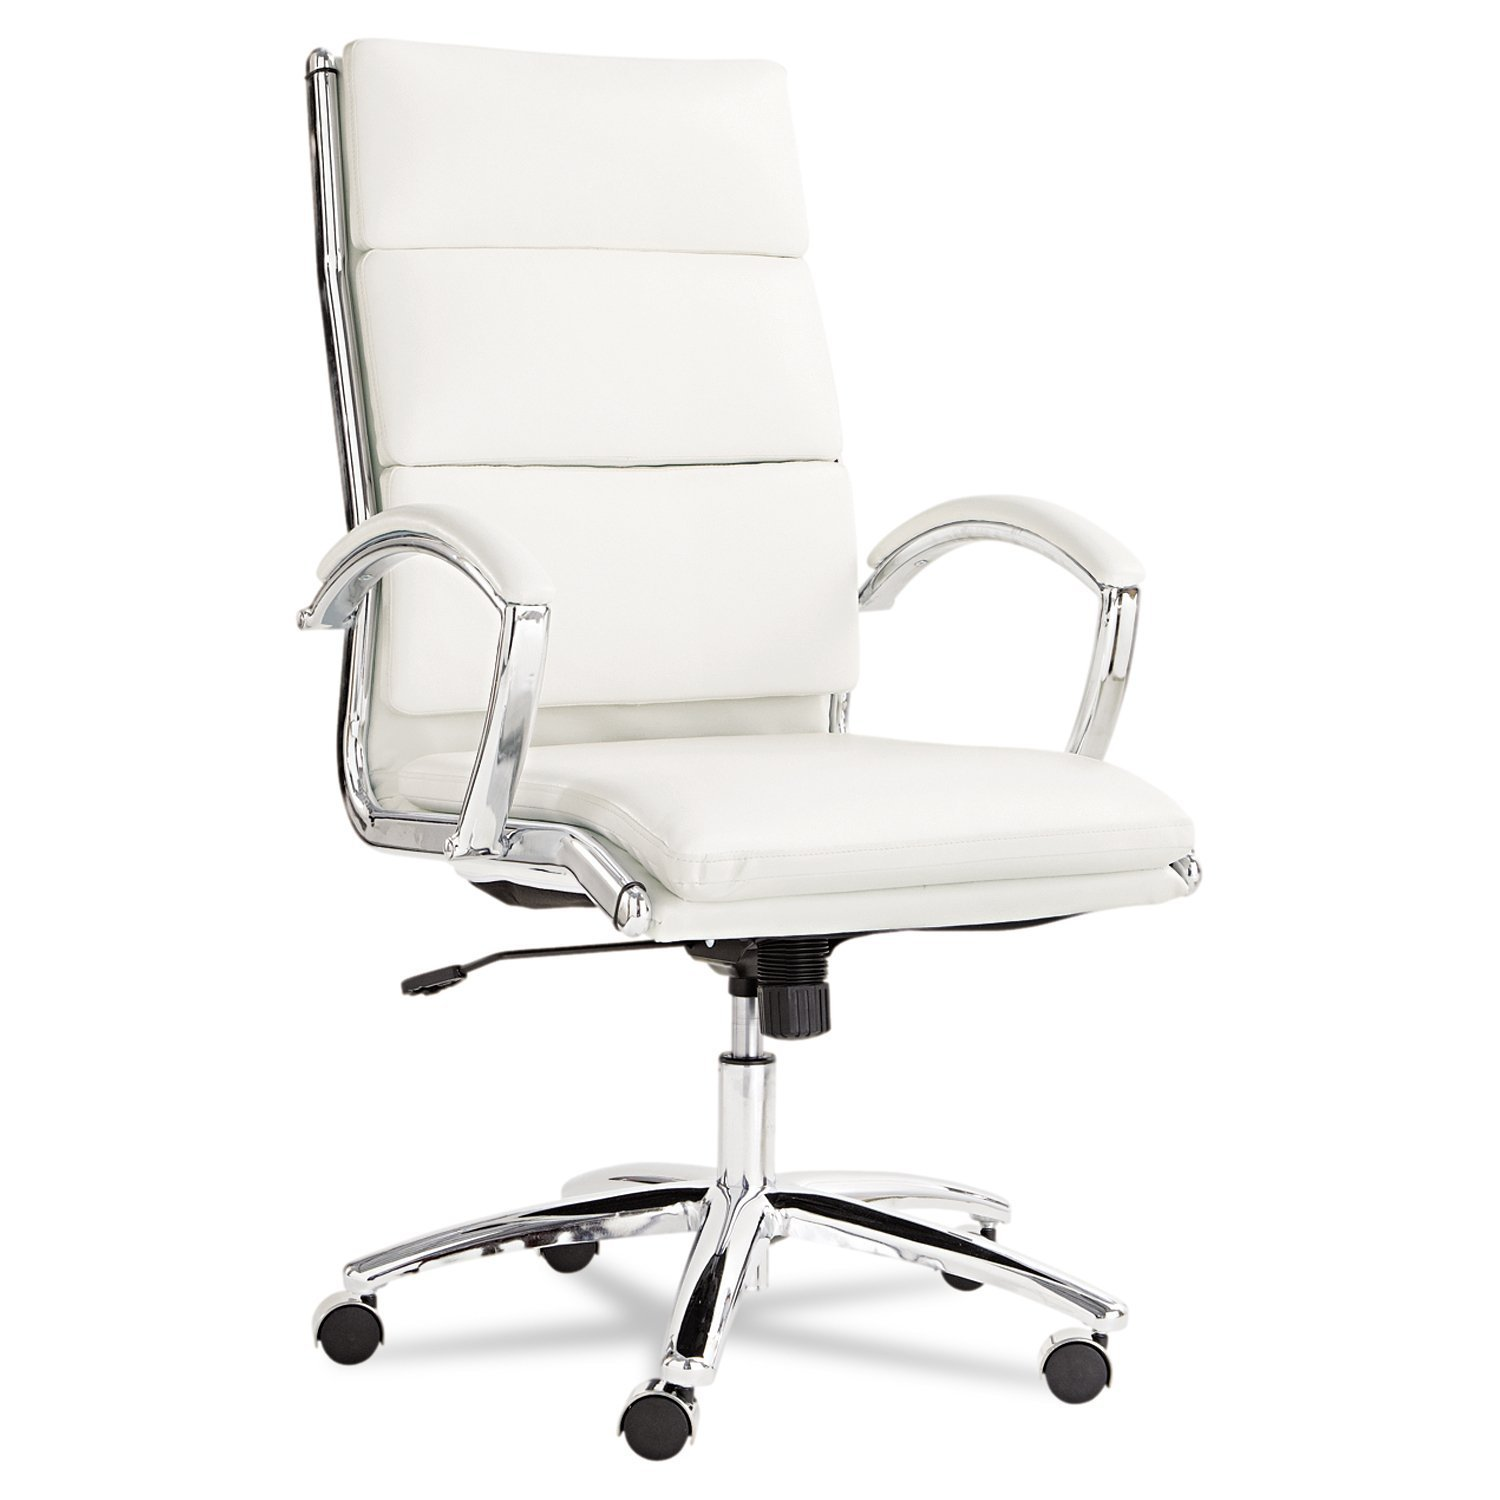 Leather Conference Room Chairs White Conference Room Chairs For That Elegant Look